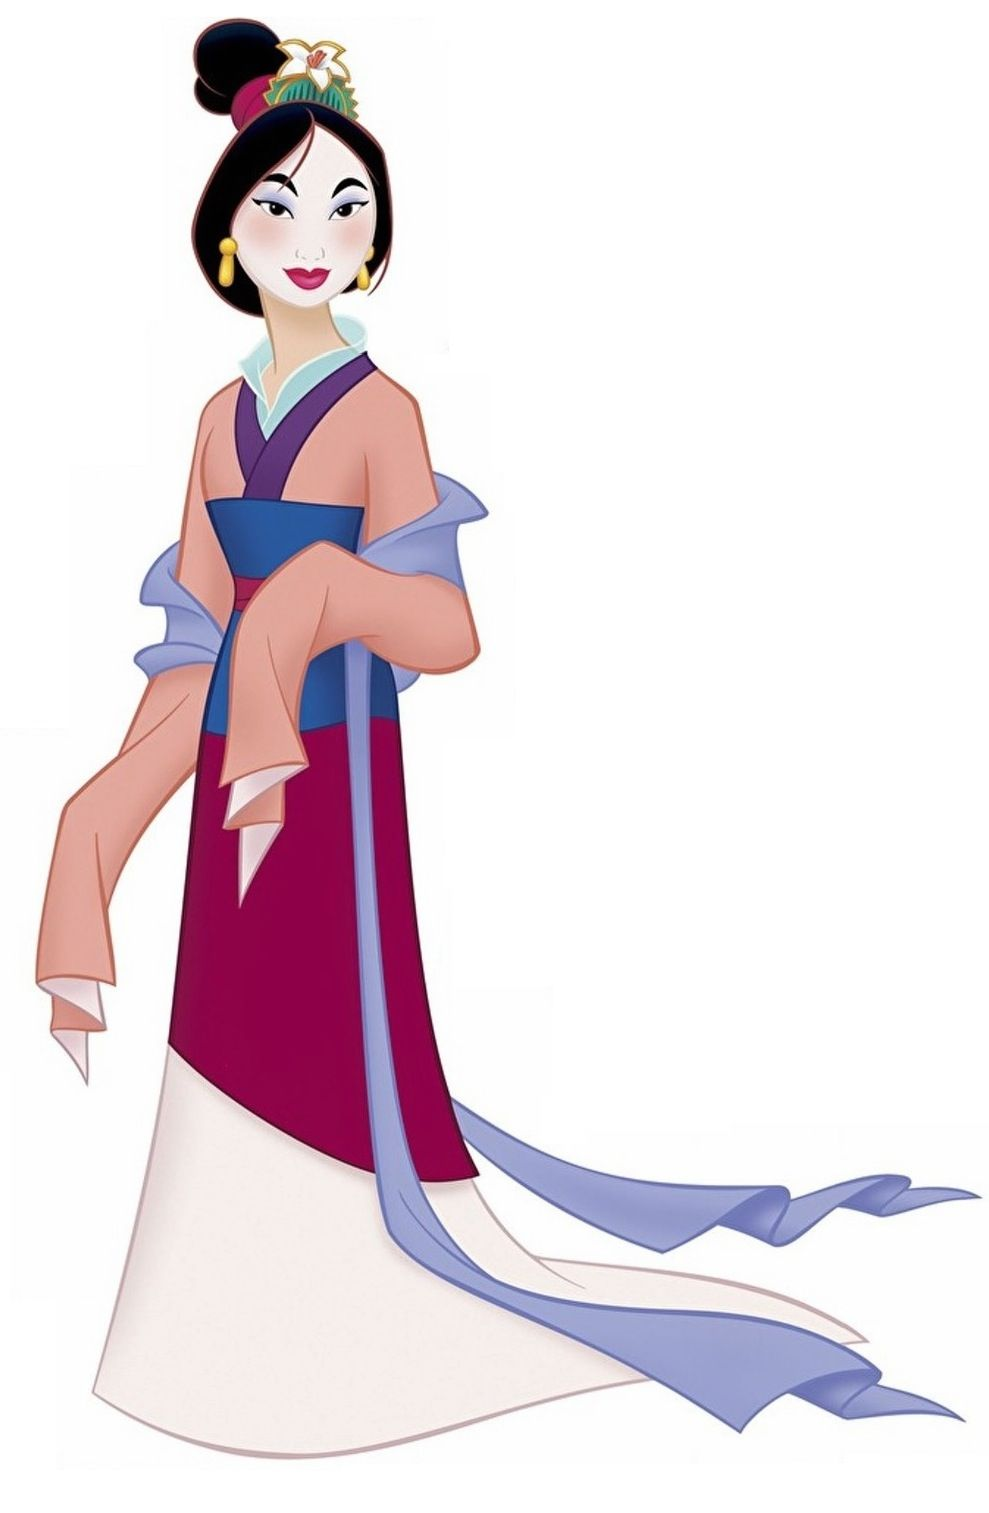 Disney Princess Photo Mulan Matchmaker Dress Disney Princess Images Mulan Disney Mulan